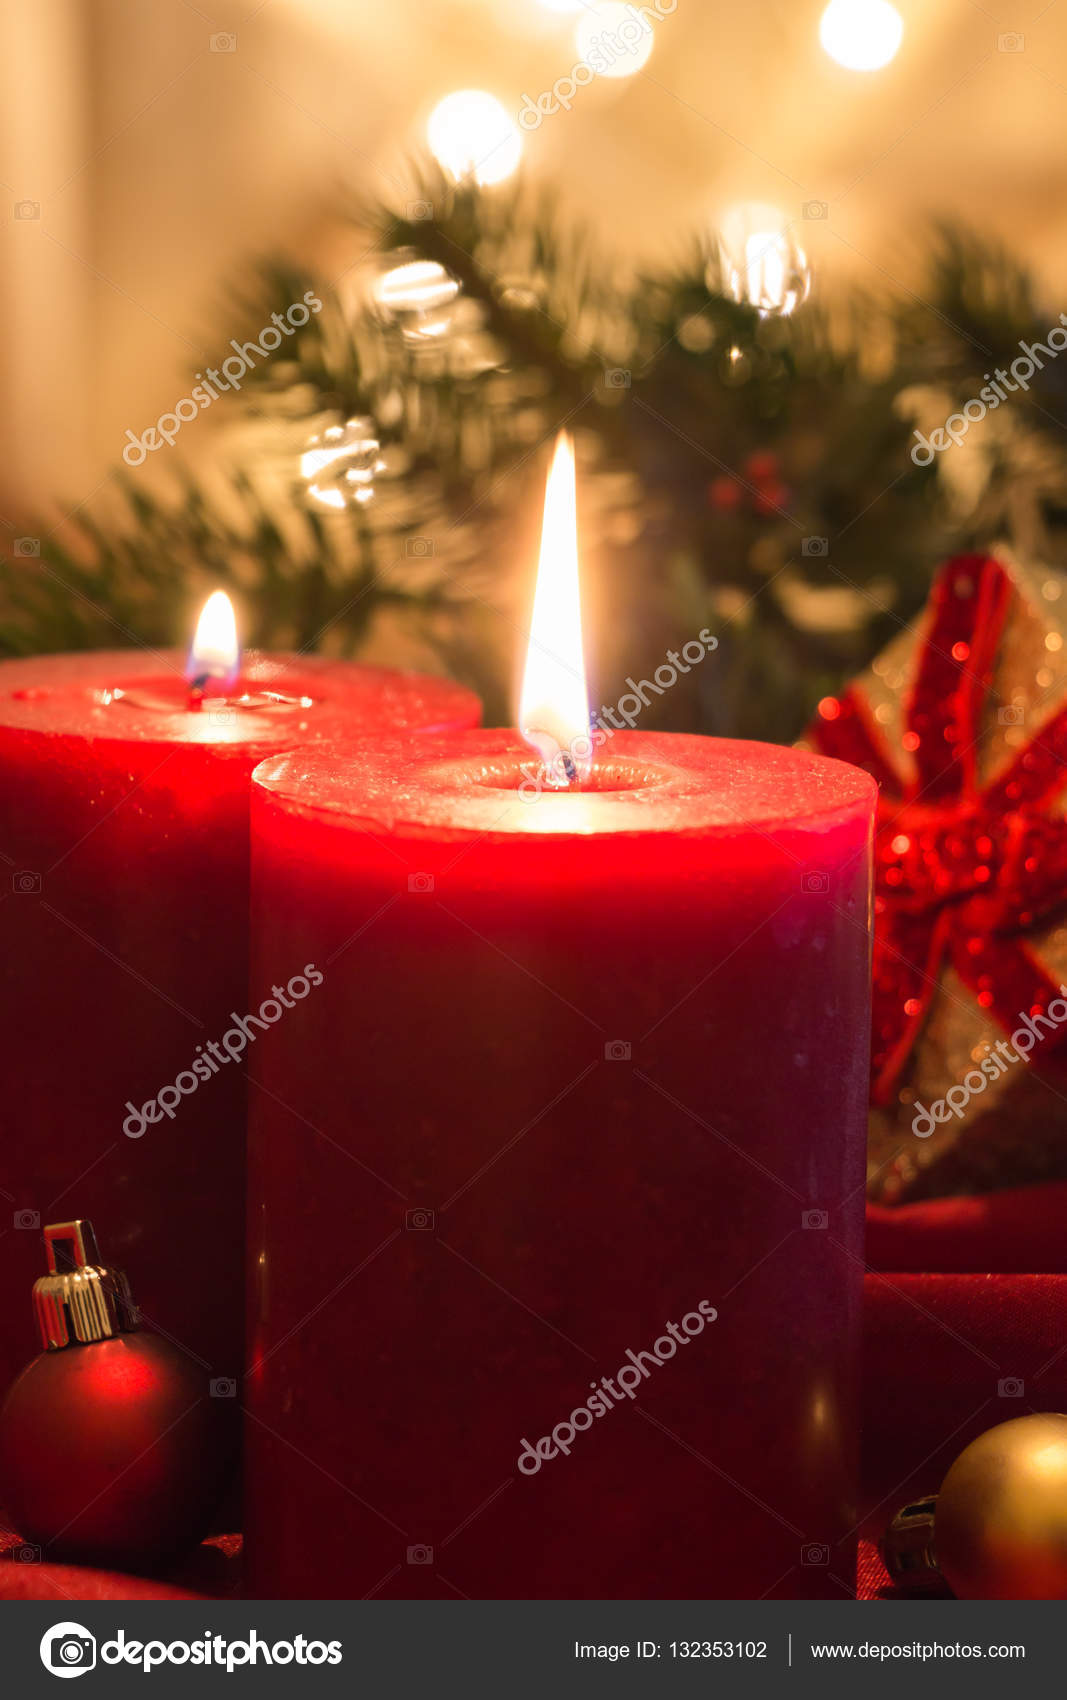 Lit Fabric Lit Red Candles With Christmas Balls On Red Fabric And Golden